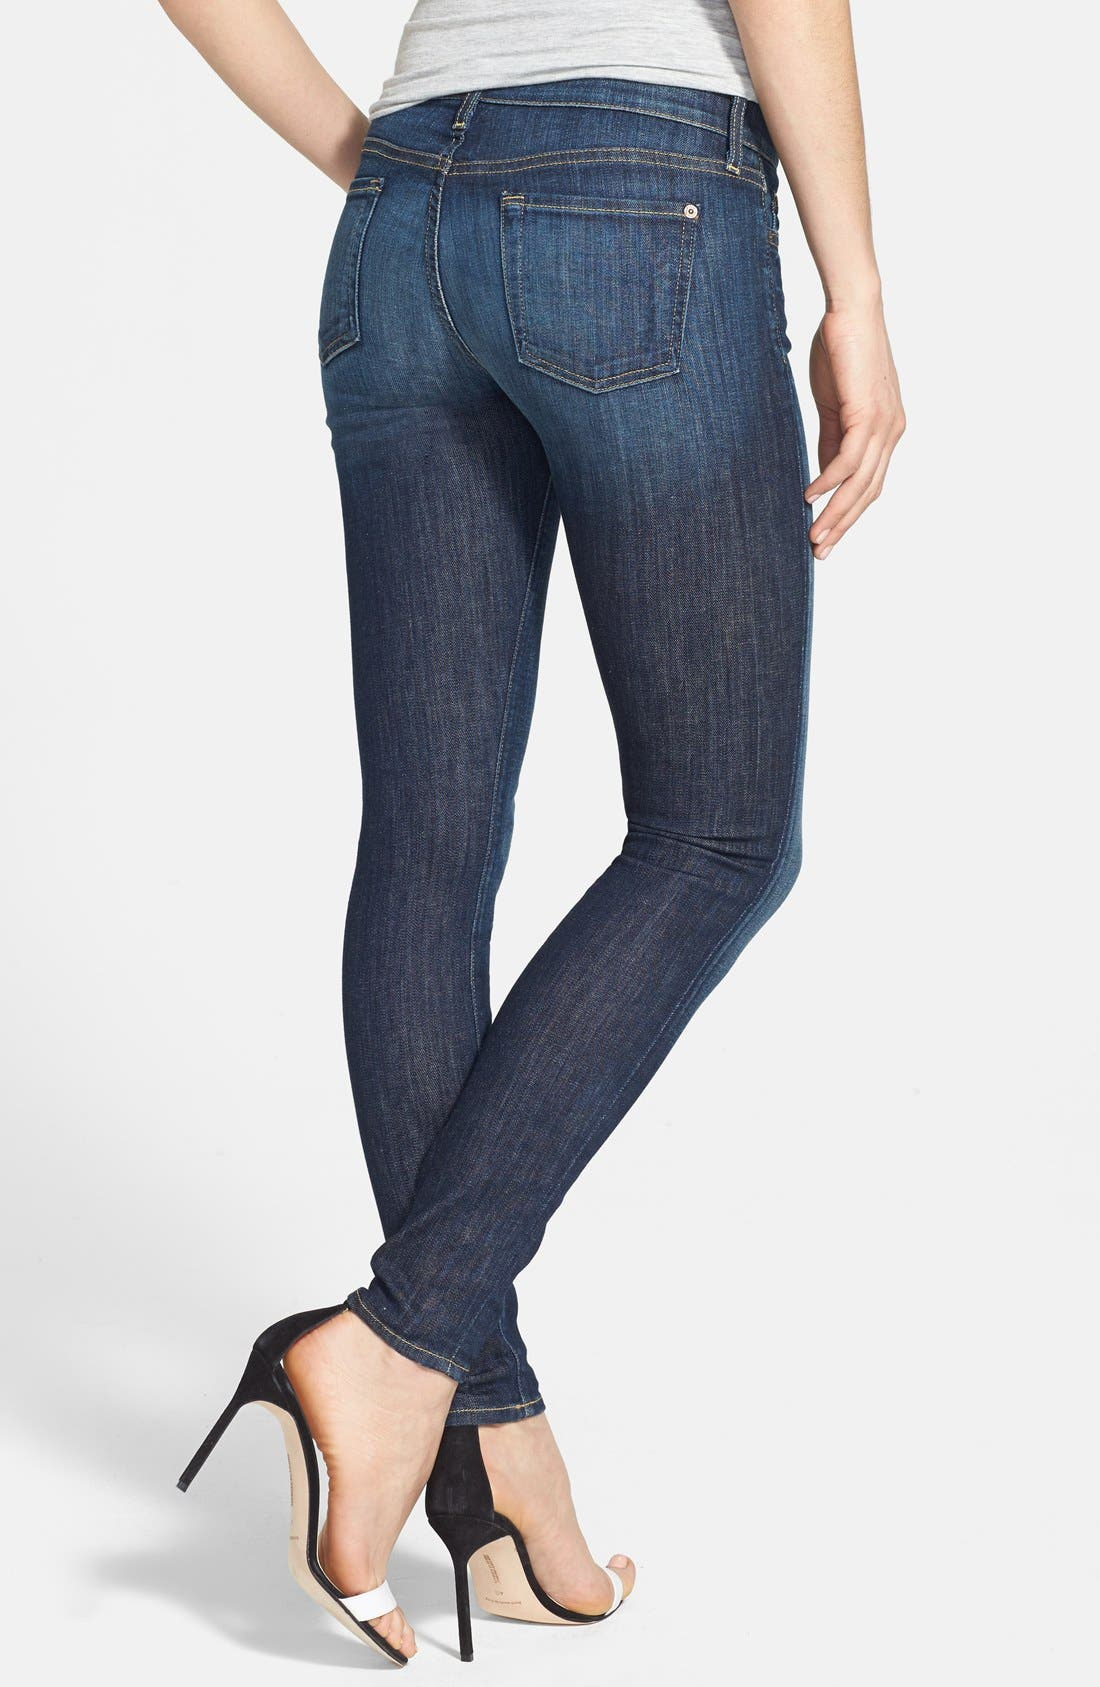 Alternate Image 2  - 7 For All Mankind® 'The Skinny' Mid Rise Skinny Jeans (Nouveau New York Dark)